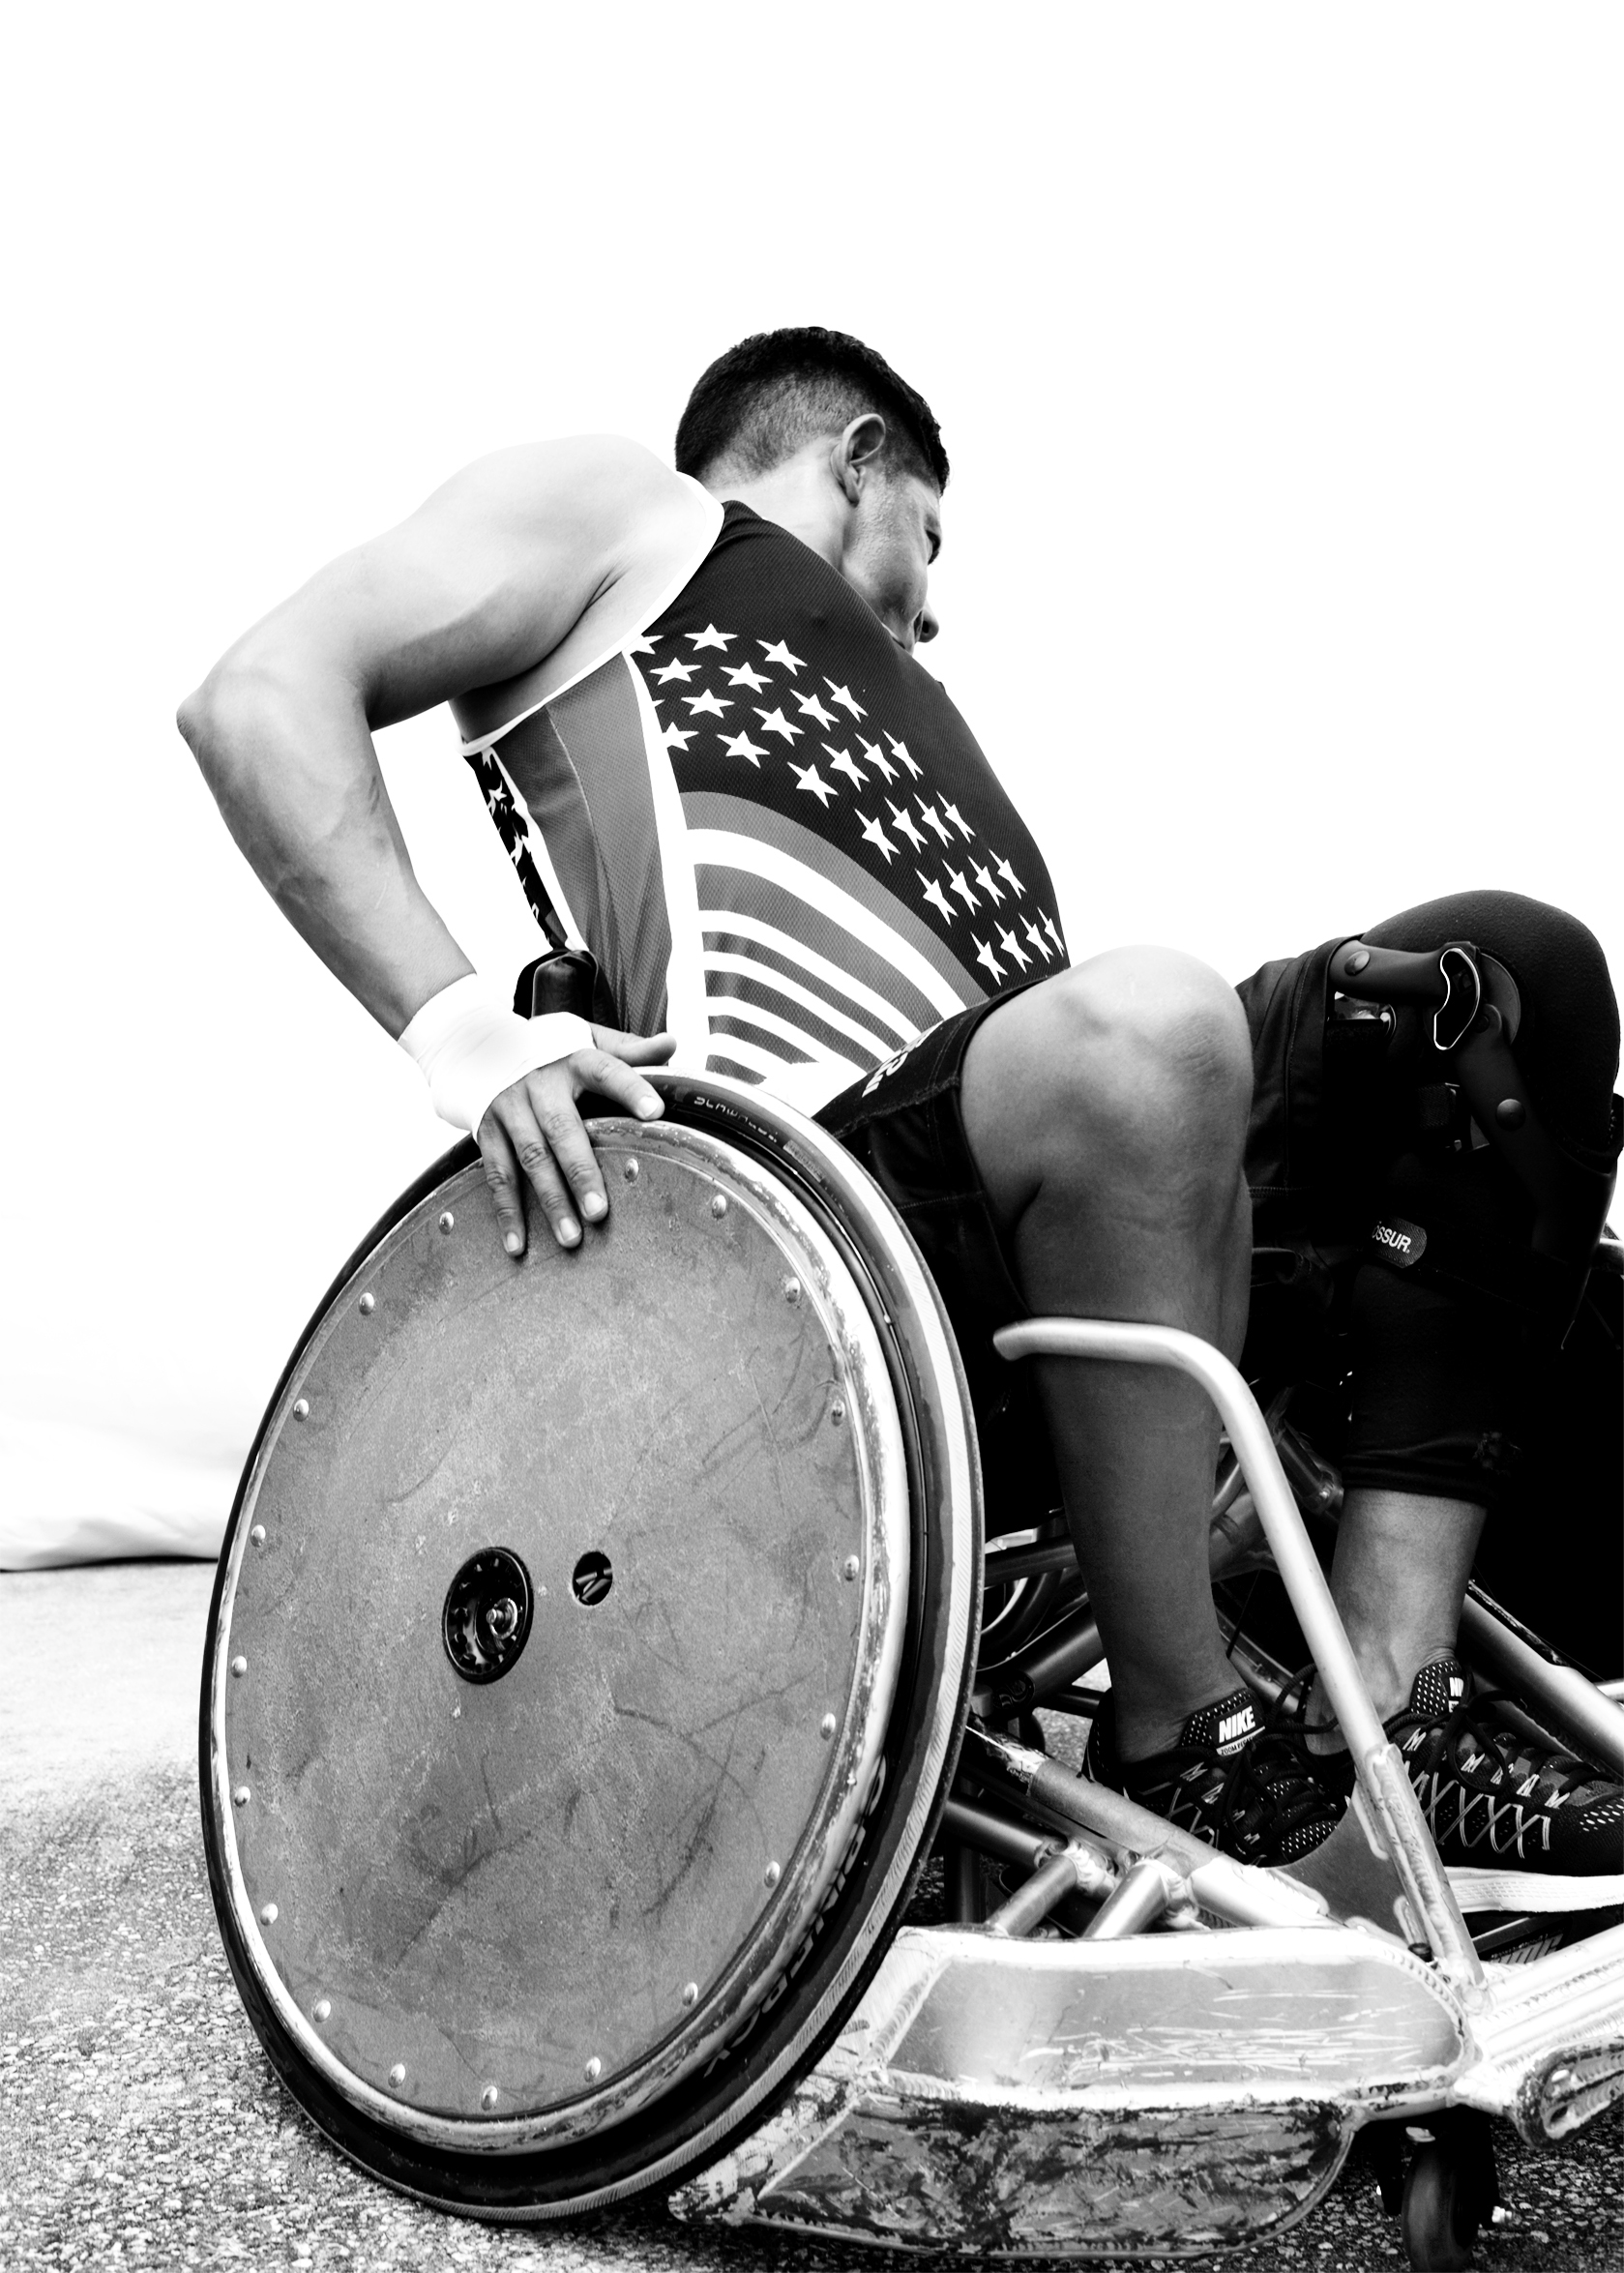 Anthony Rios, USA, competed in cycling, sitting volleyball and wheelchair rugby